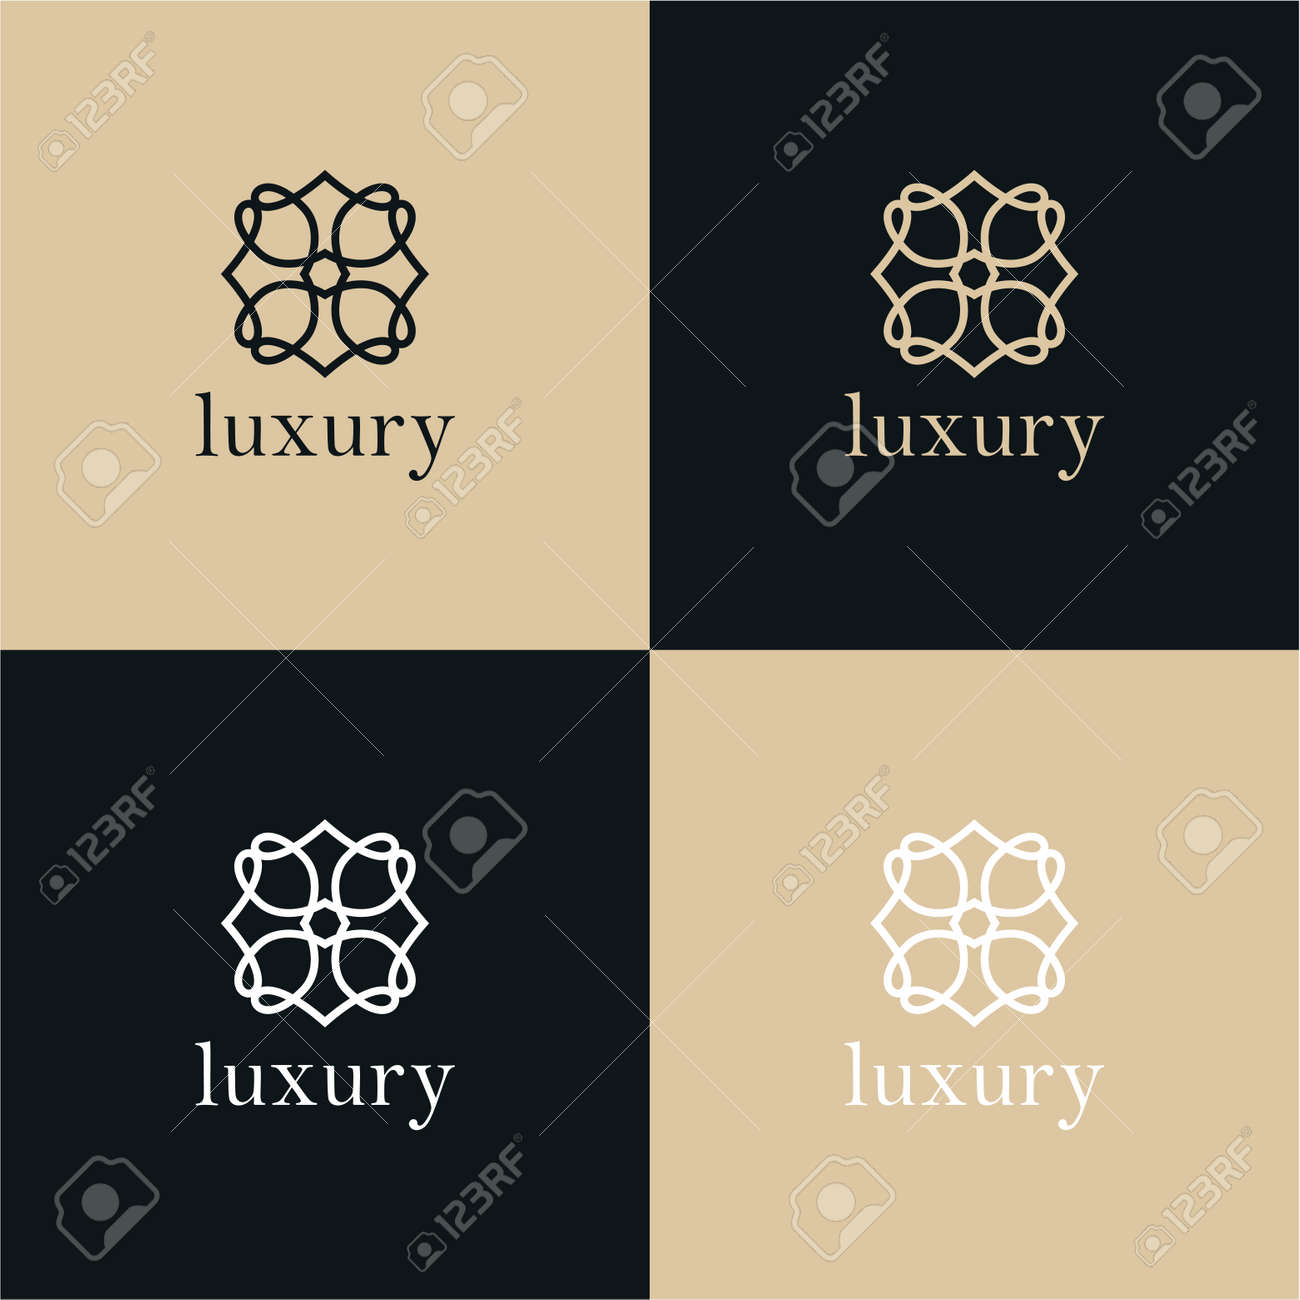 Abstract tree leaf flower logo icon vector design. Universal creative premium symbol. Graceful jewel boutique vector sign. - 139833328